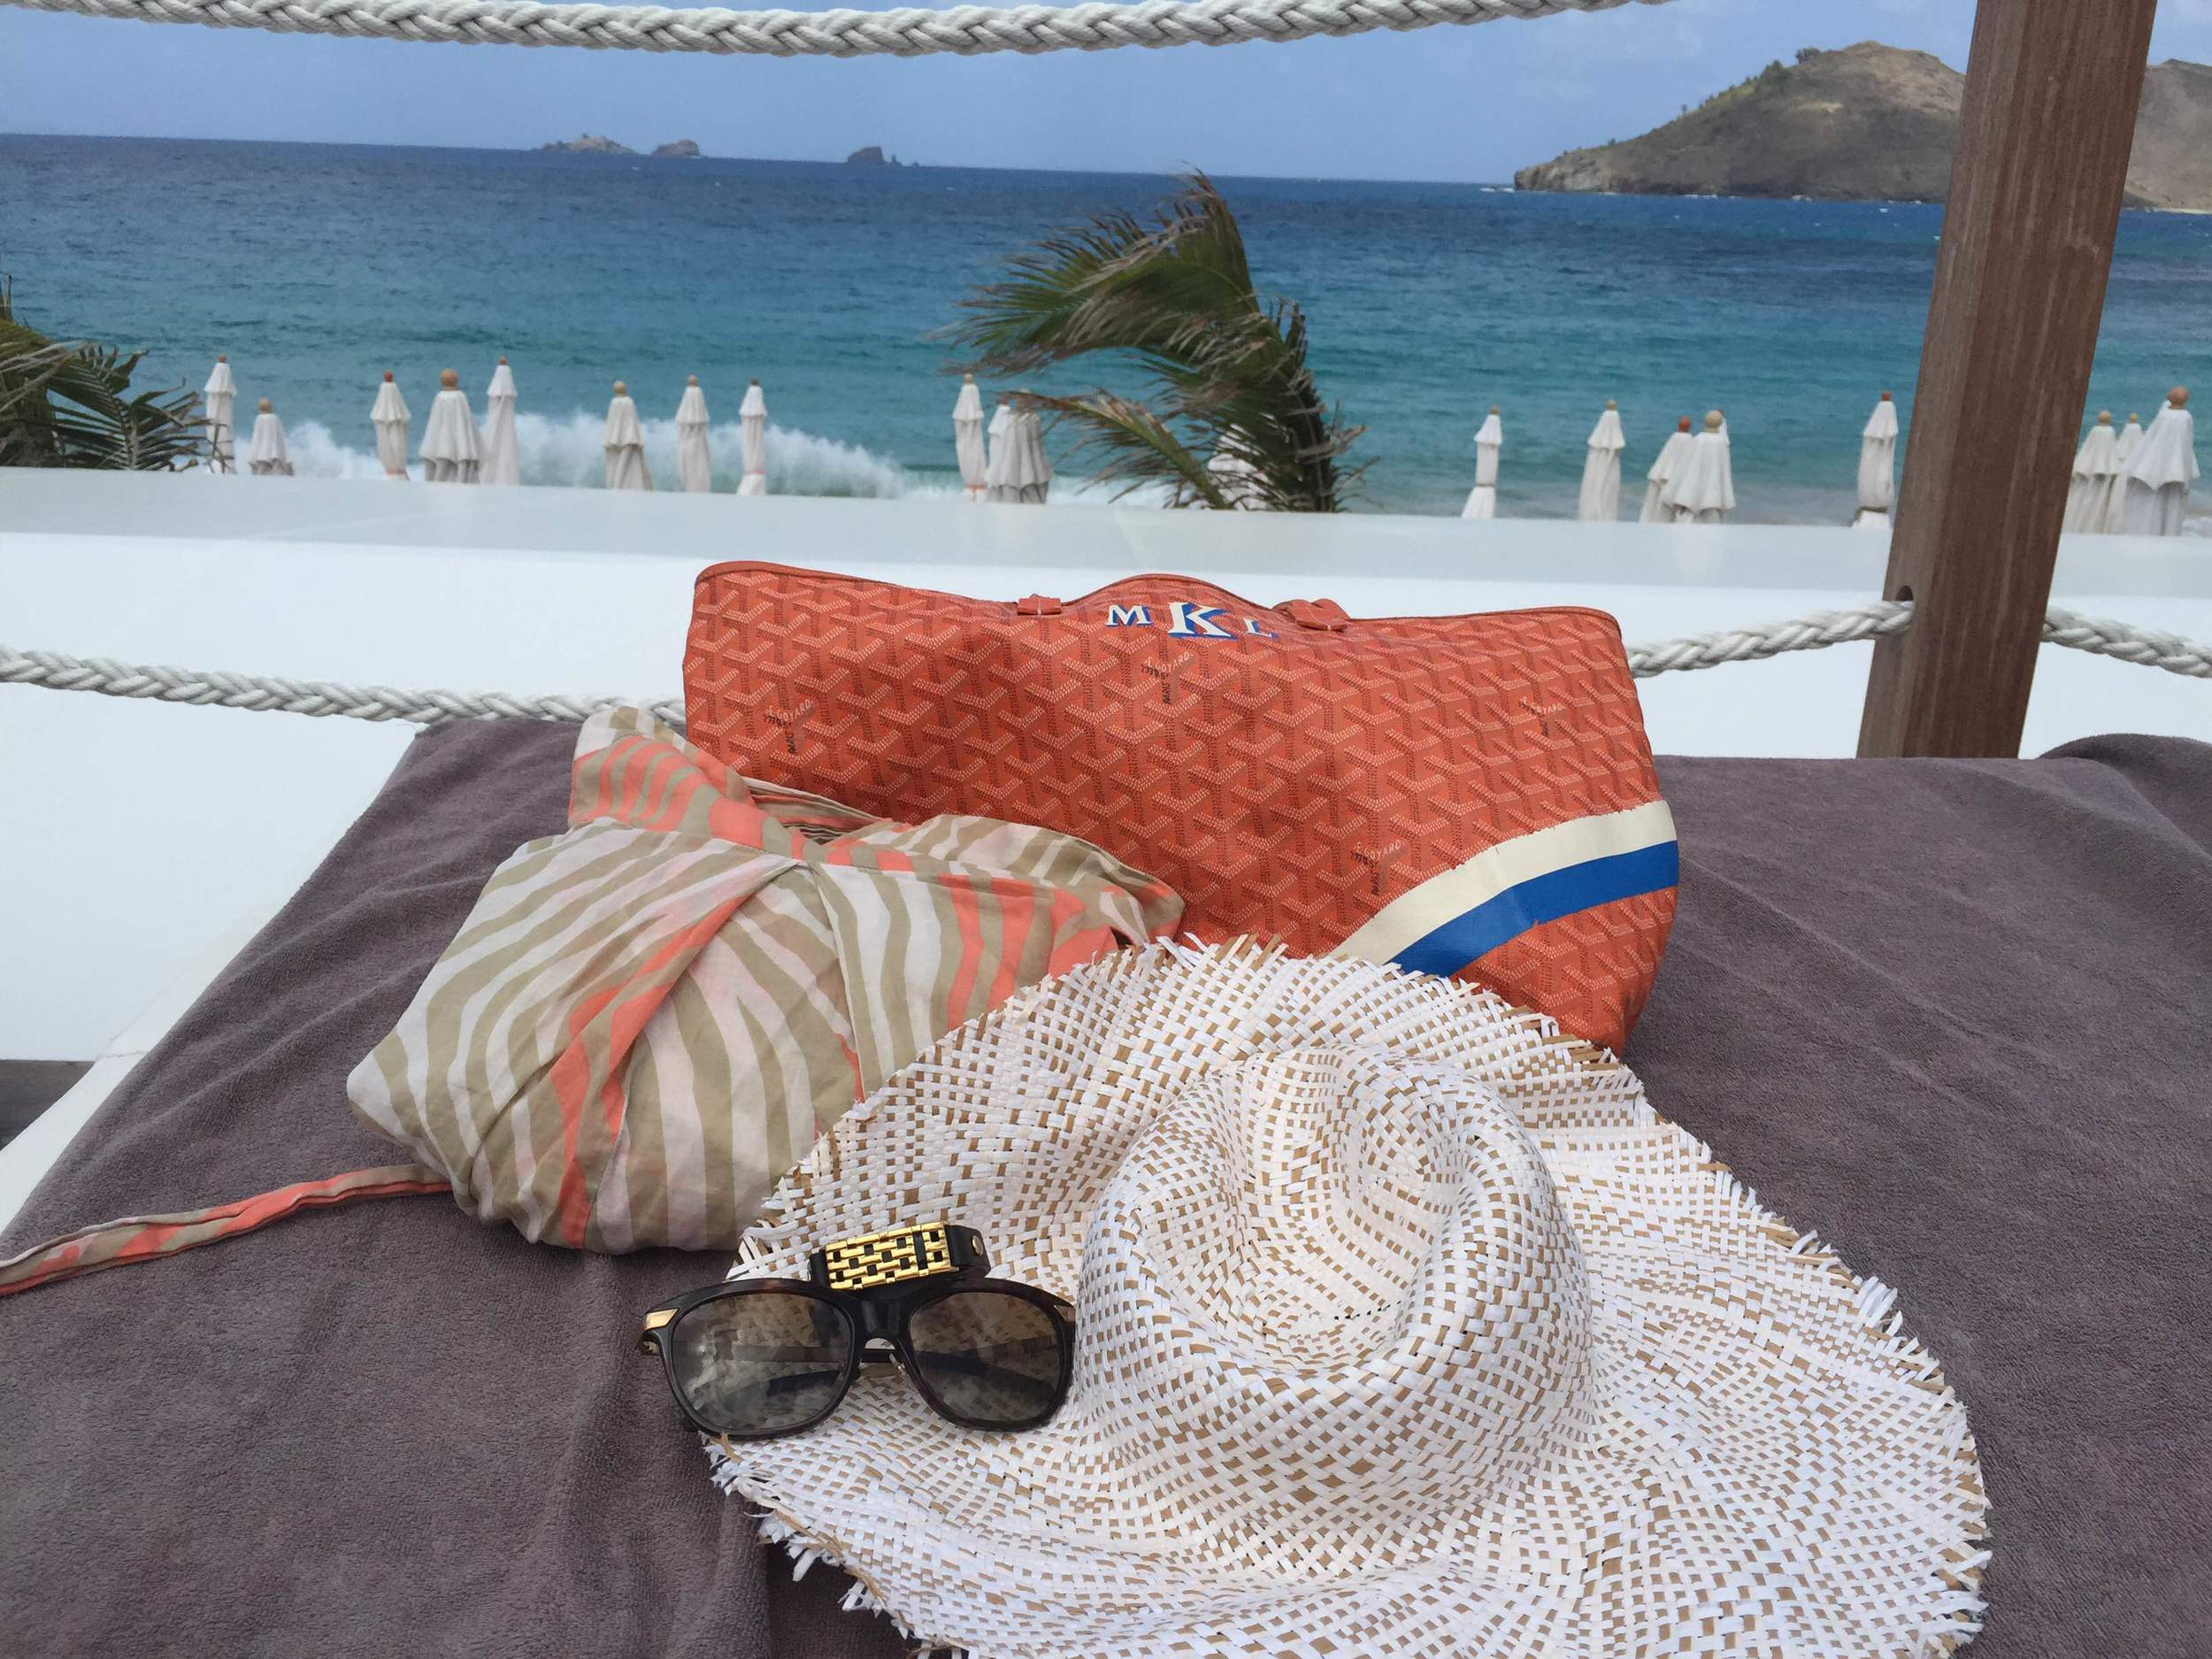 What to wear in St. Barths: DVF maxi dress cover up, Goyard St. Louis tote bag, Burberry sunglasses, Bezels & Bytes bracelet with Fitbit tracker inside, BCBG sunhat.